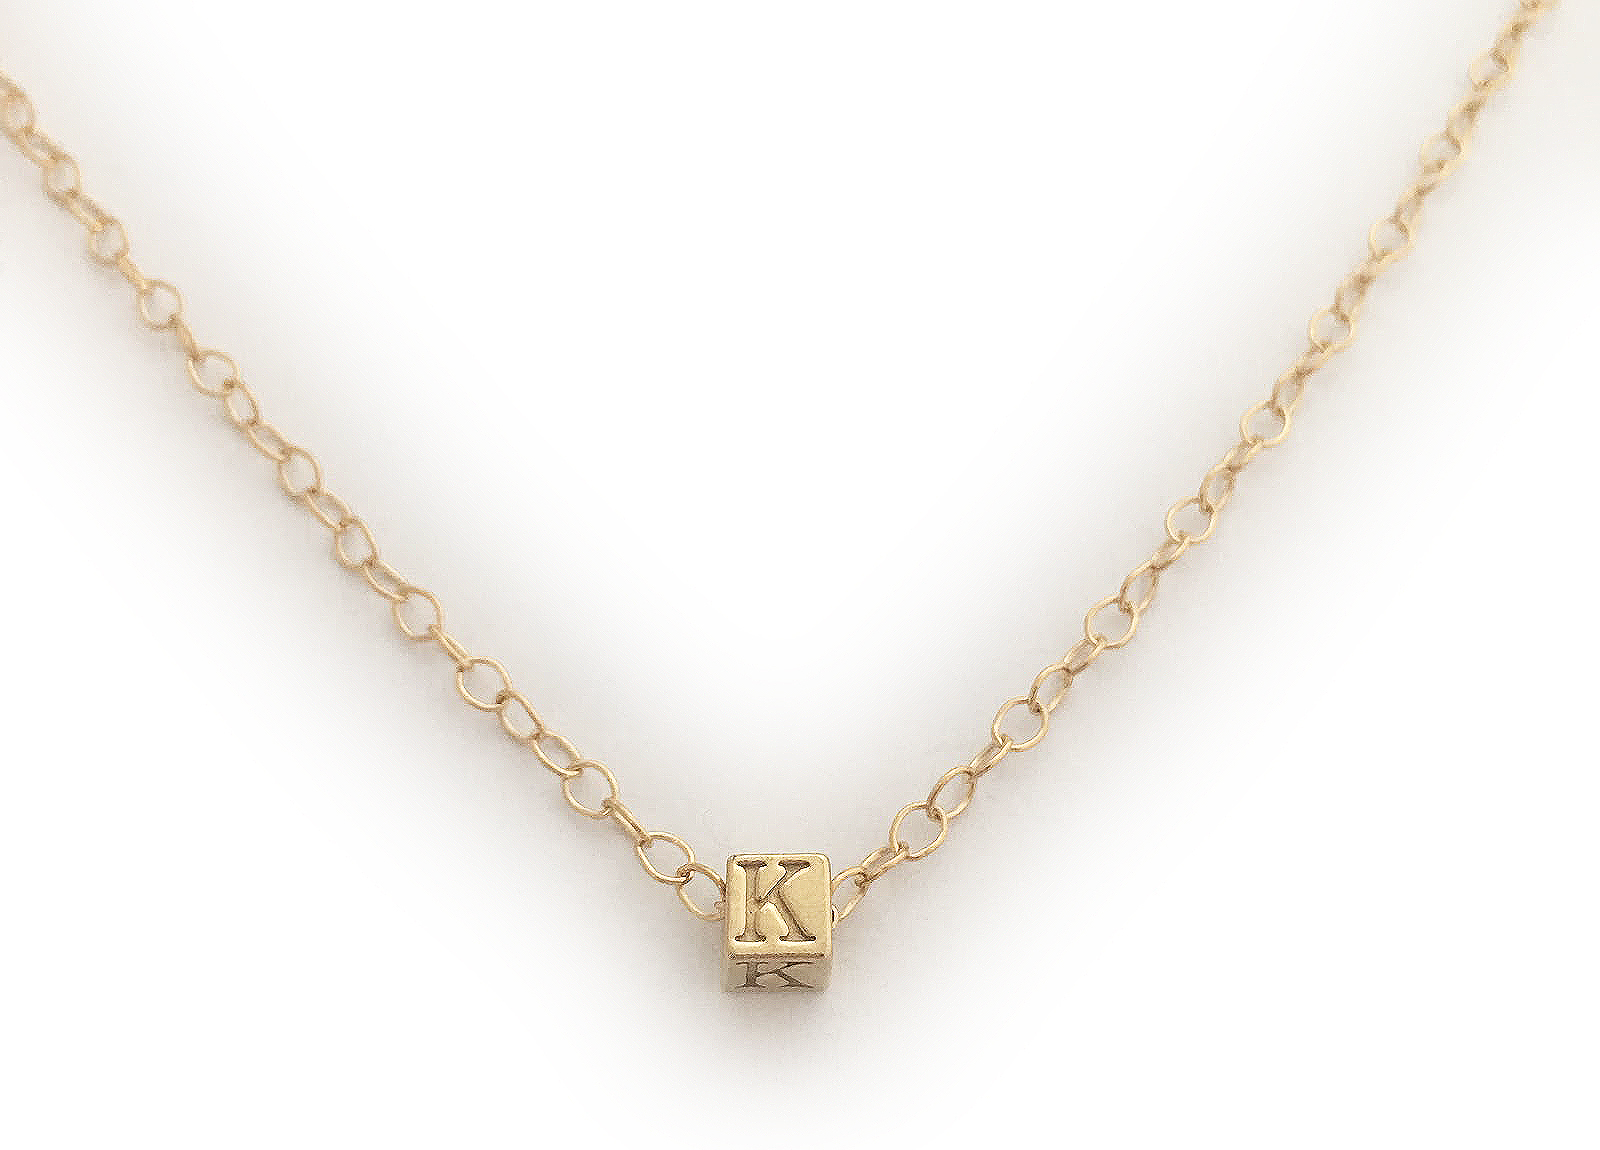 Gold Name Necklaces - Gold Initial Necklace or Gold Monogram Necklaces